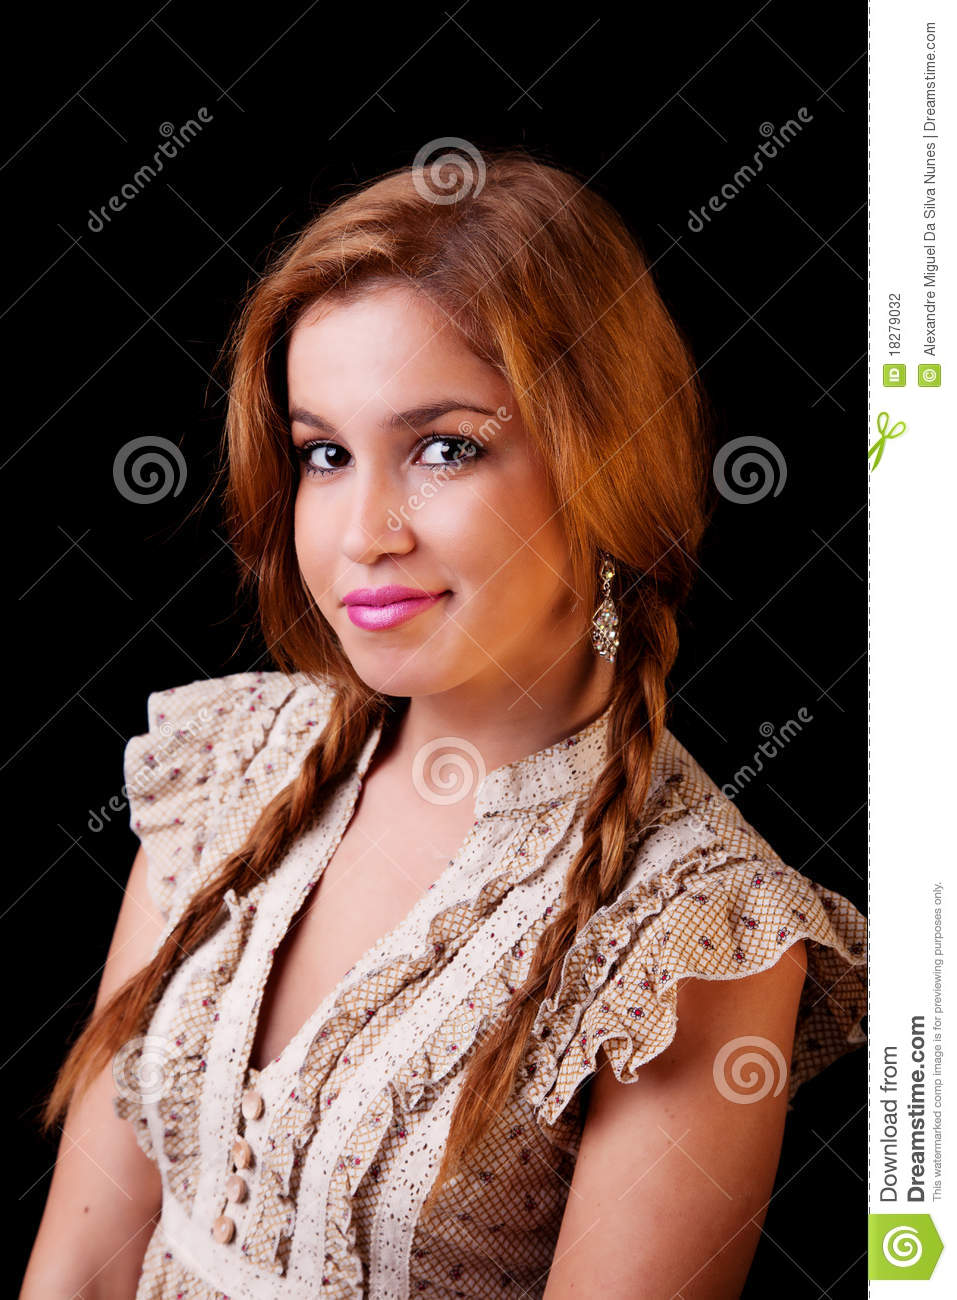 young pretty women with braids, smiling, stock photo - image of